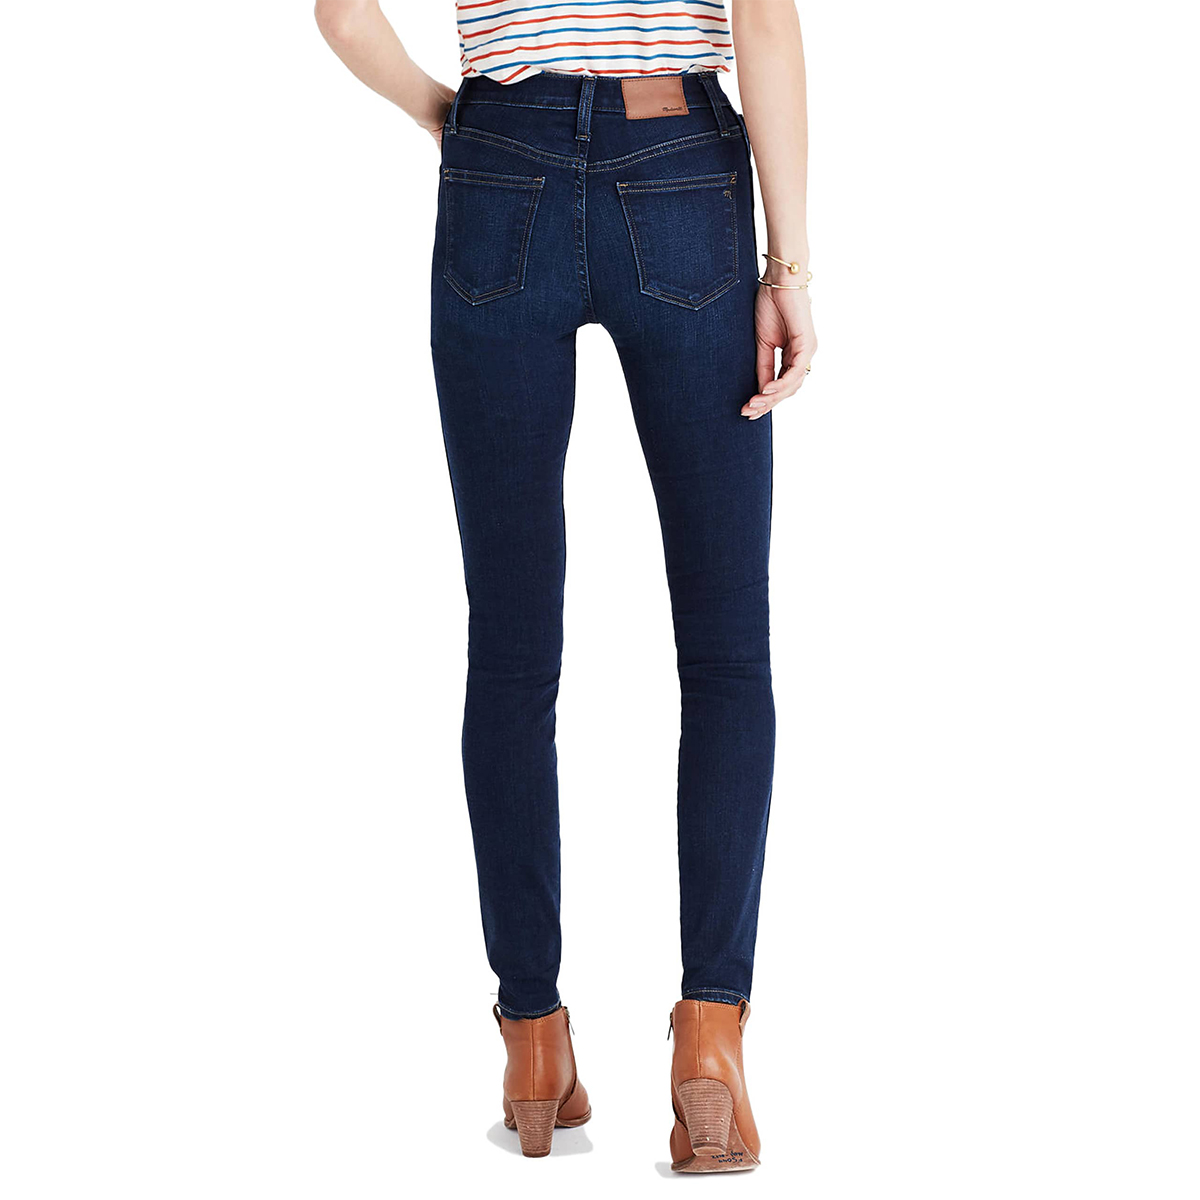 jeans-for-flat-butt-madewell